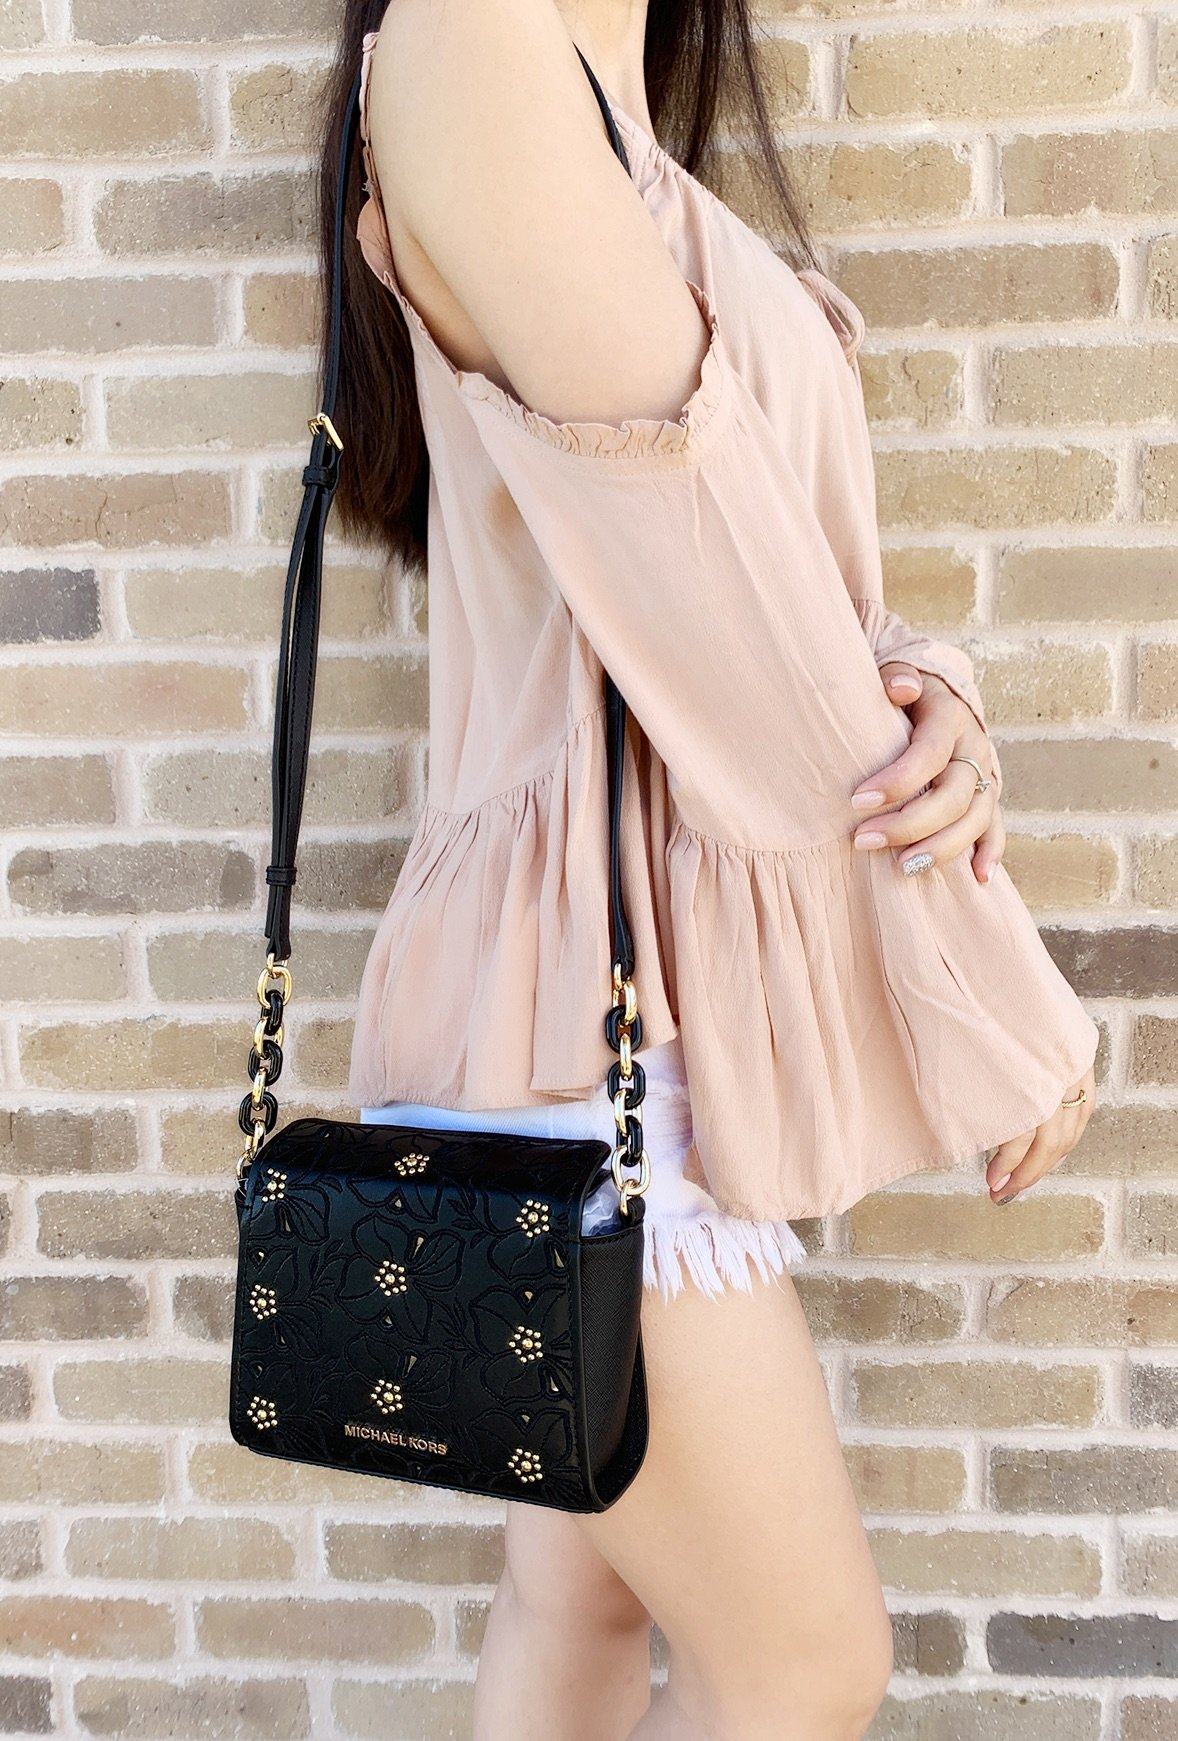 cae1d291a611 Michael Kors Sofia Small Crossbody Black Pale Gold Perforated Floral Studded